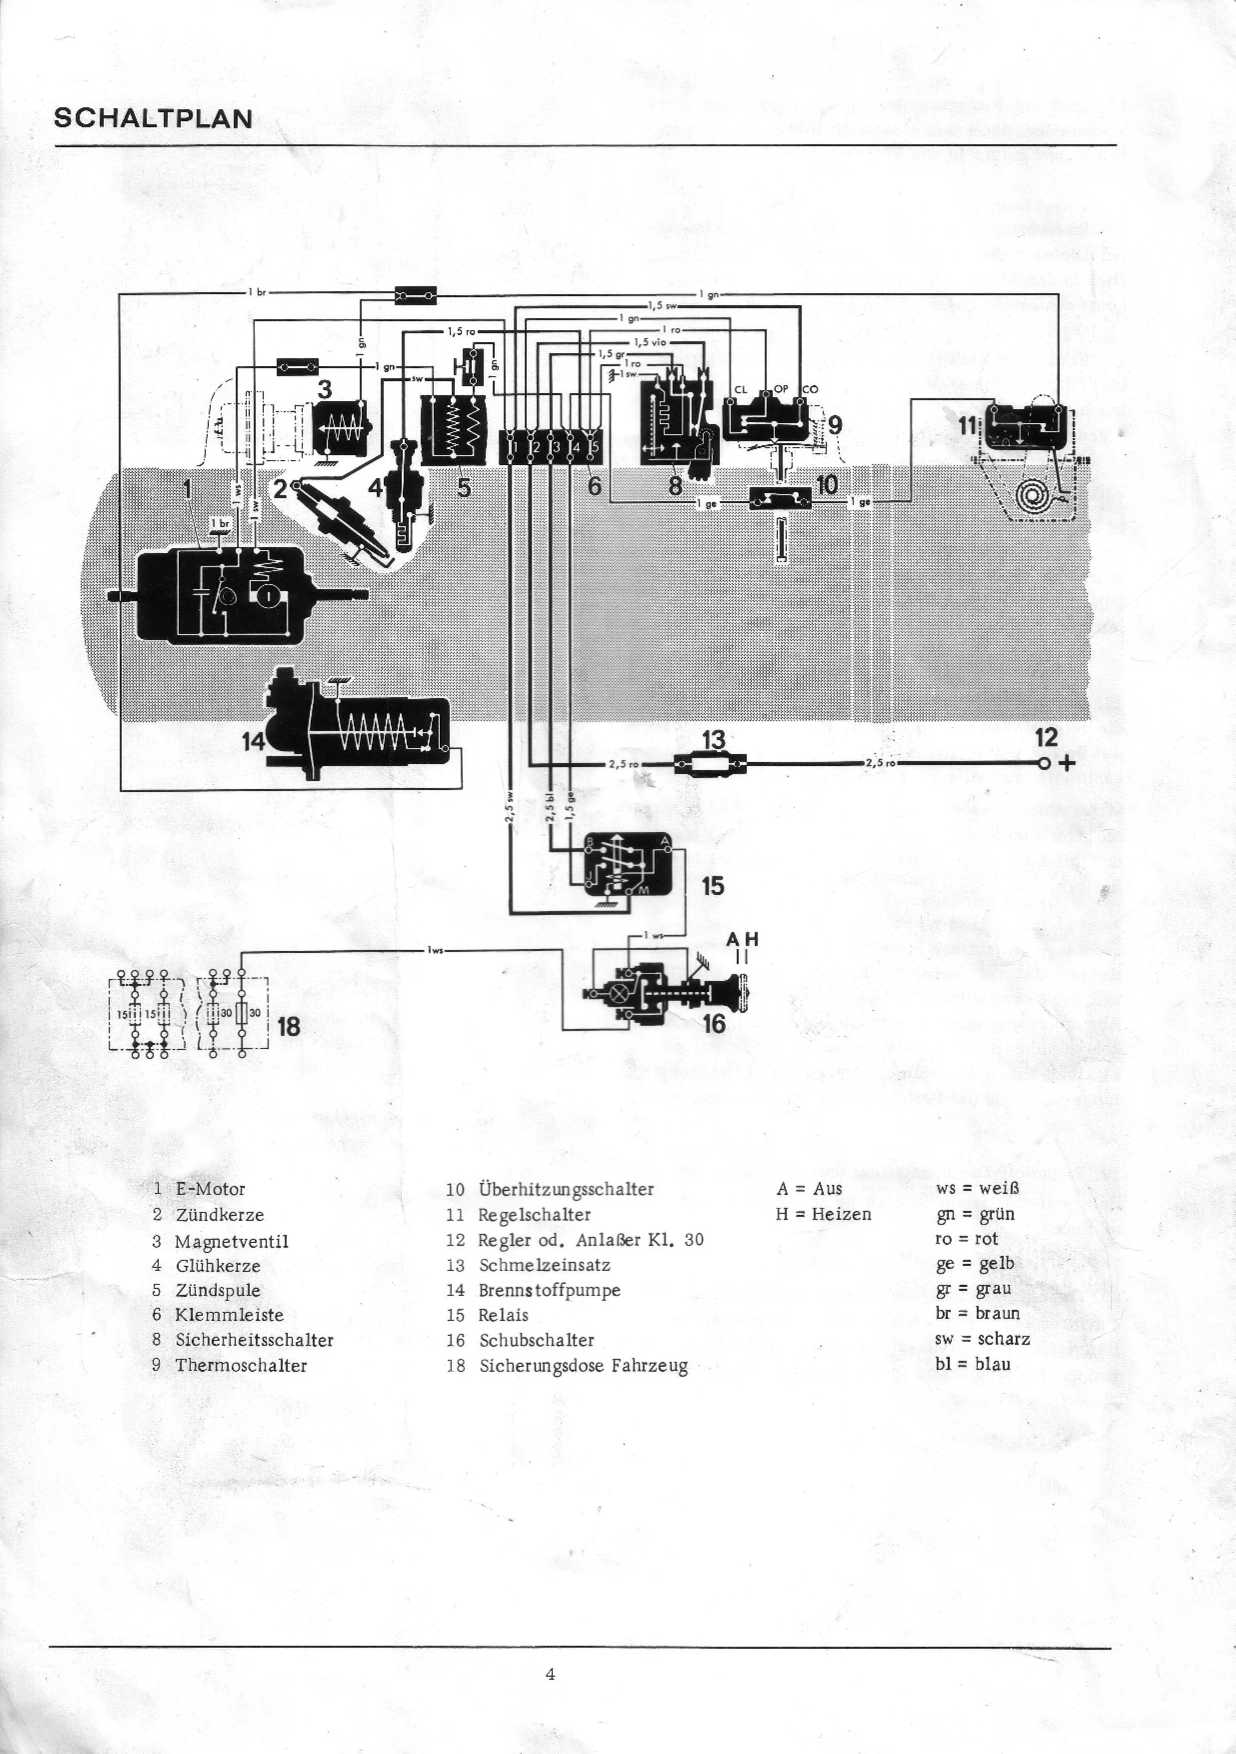 1970 10 eberspaecher bn4 wiring diagram?resize\=665%2C944 1970 mach 1 wiring diagram 1970 mach 1 exhaust, 1970 mach 1 door 1970 mustang wiring diagram at alyssarenee.co